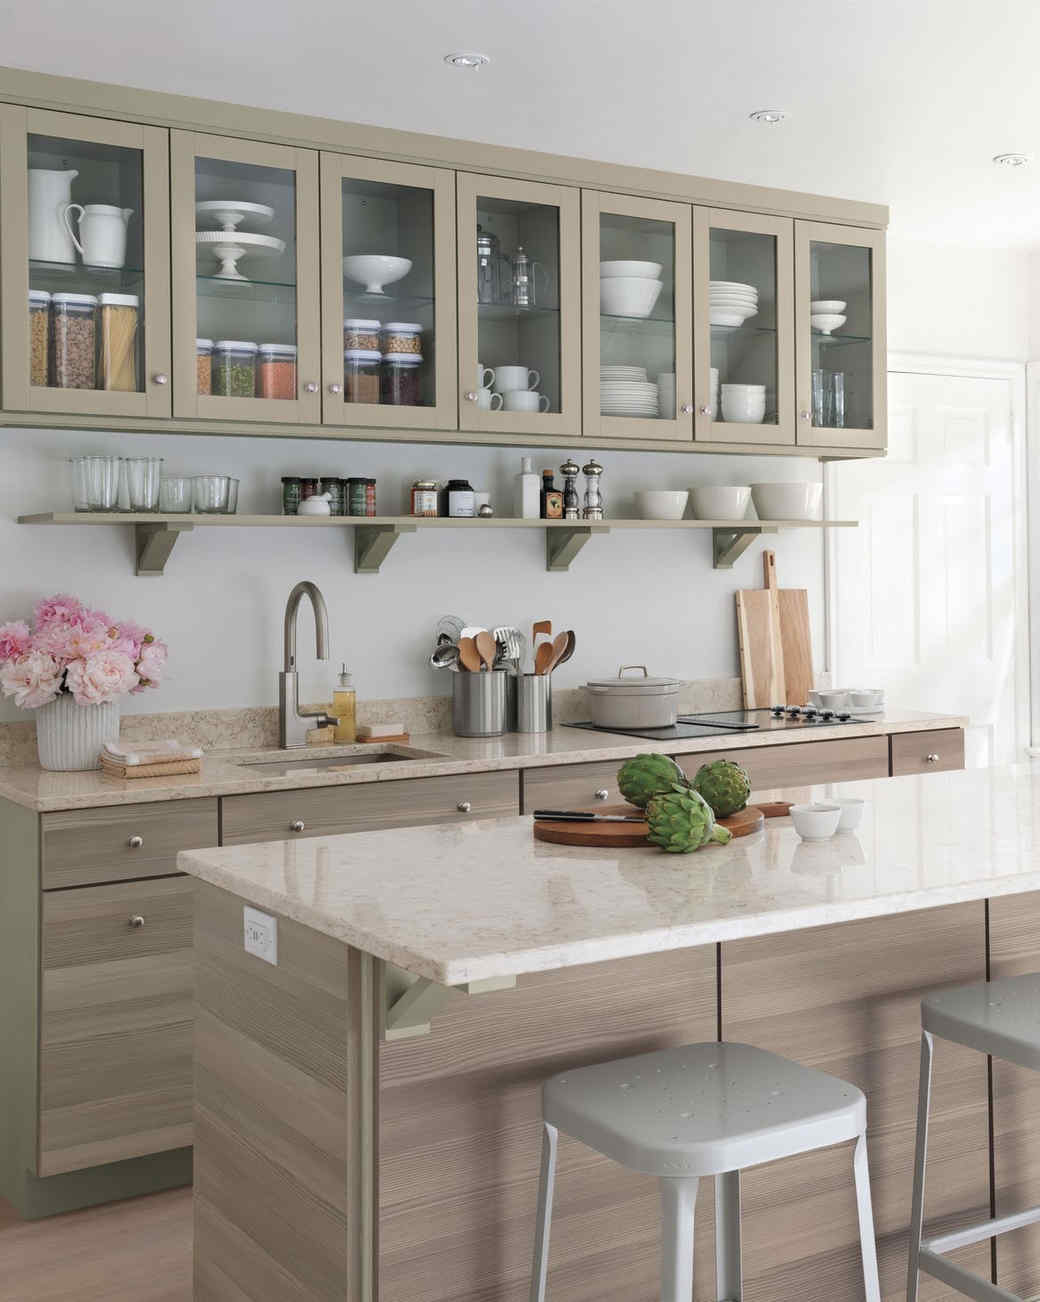 How to Clean Even the Messiest Kitchen Surfaces